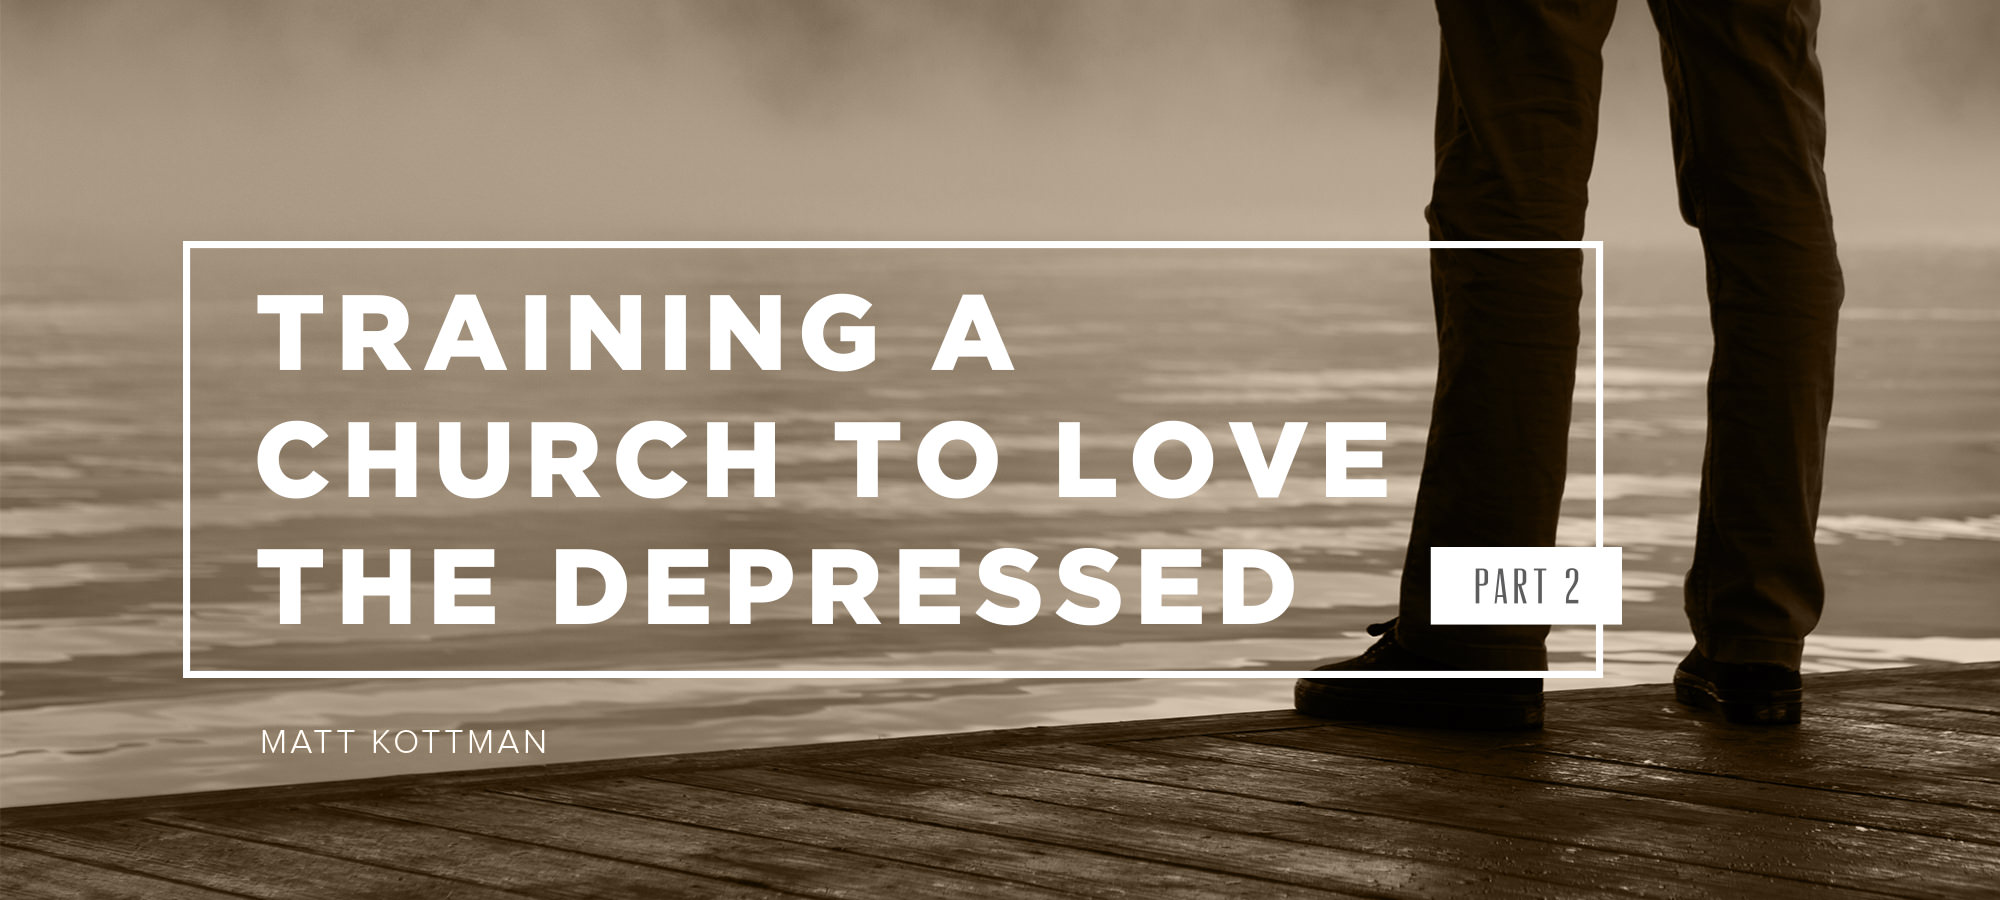 Training a Church to Love the Depressed - Part 2